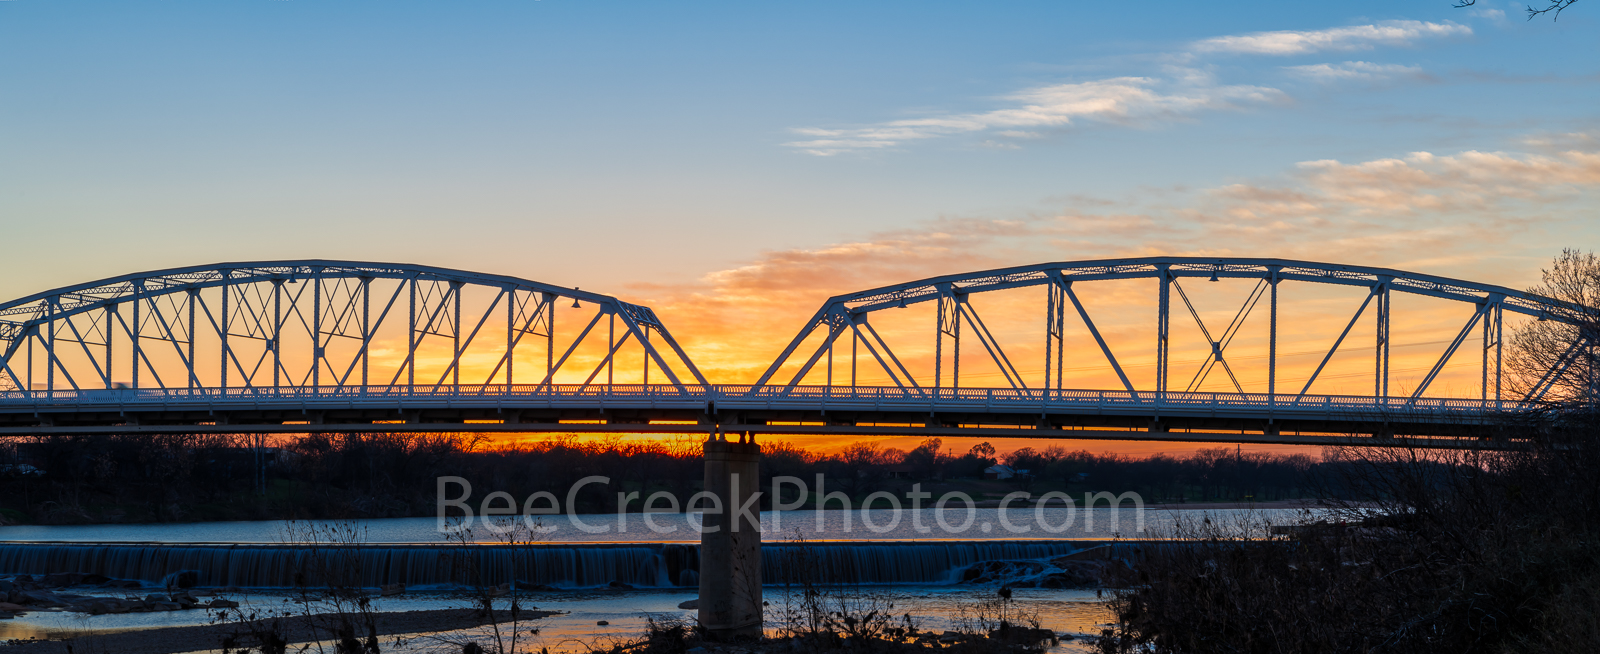 Llano bridge, texas hill country, sunset, pictures of texas, hill country, image of texas, photos of texas, Llano, llano river, pano, panorama, town, flooding, low water dam,, photo